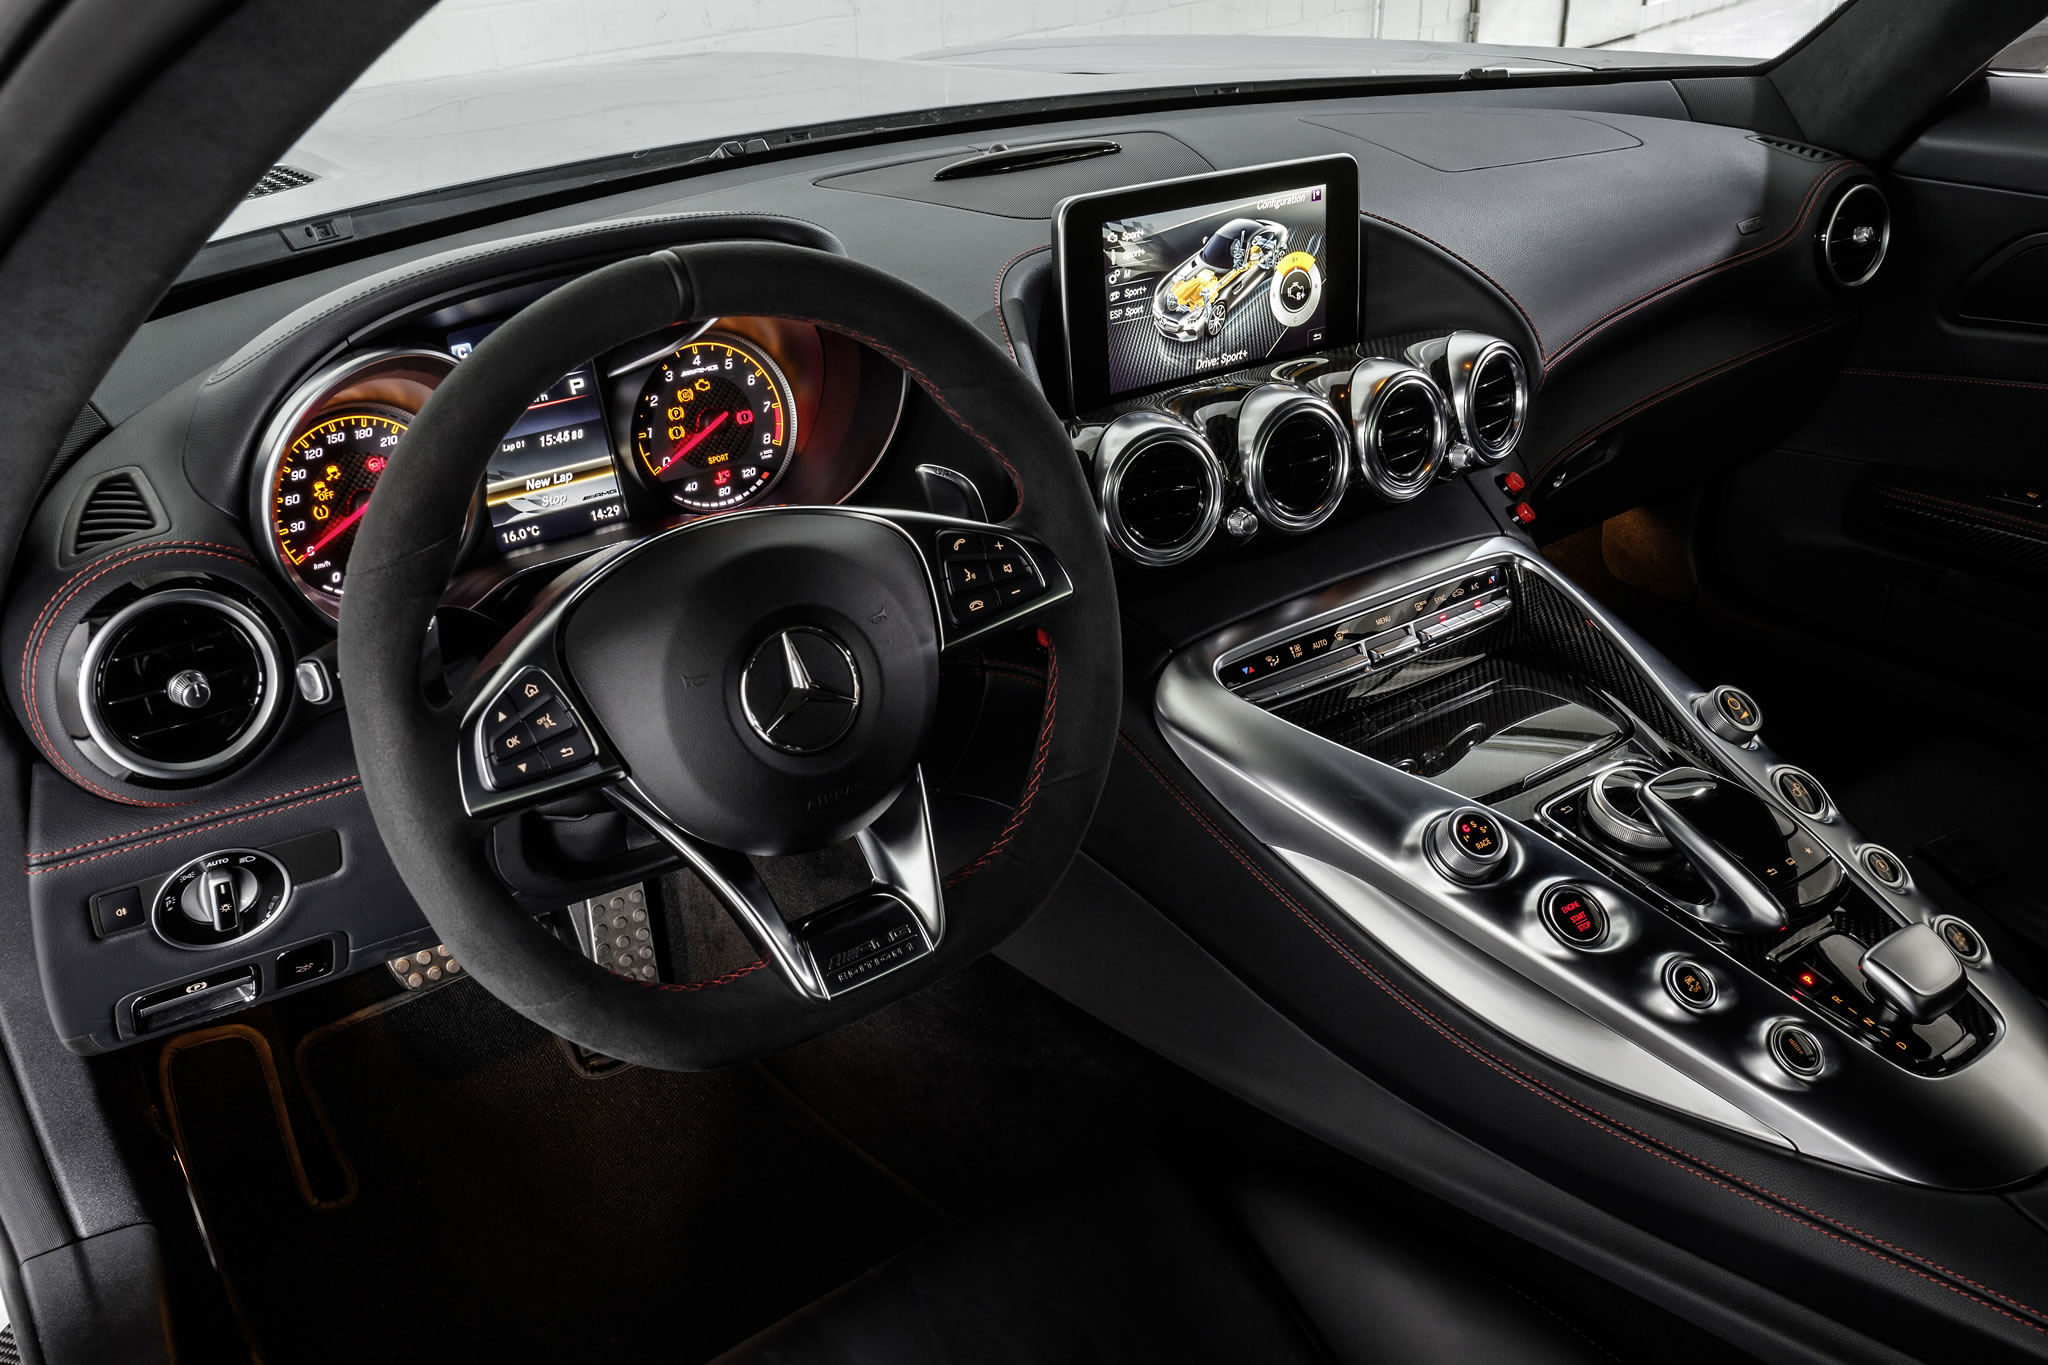 2015 Mercedes Benz Amg Gt S Dtm Safety Car Interior